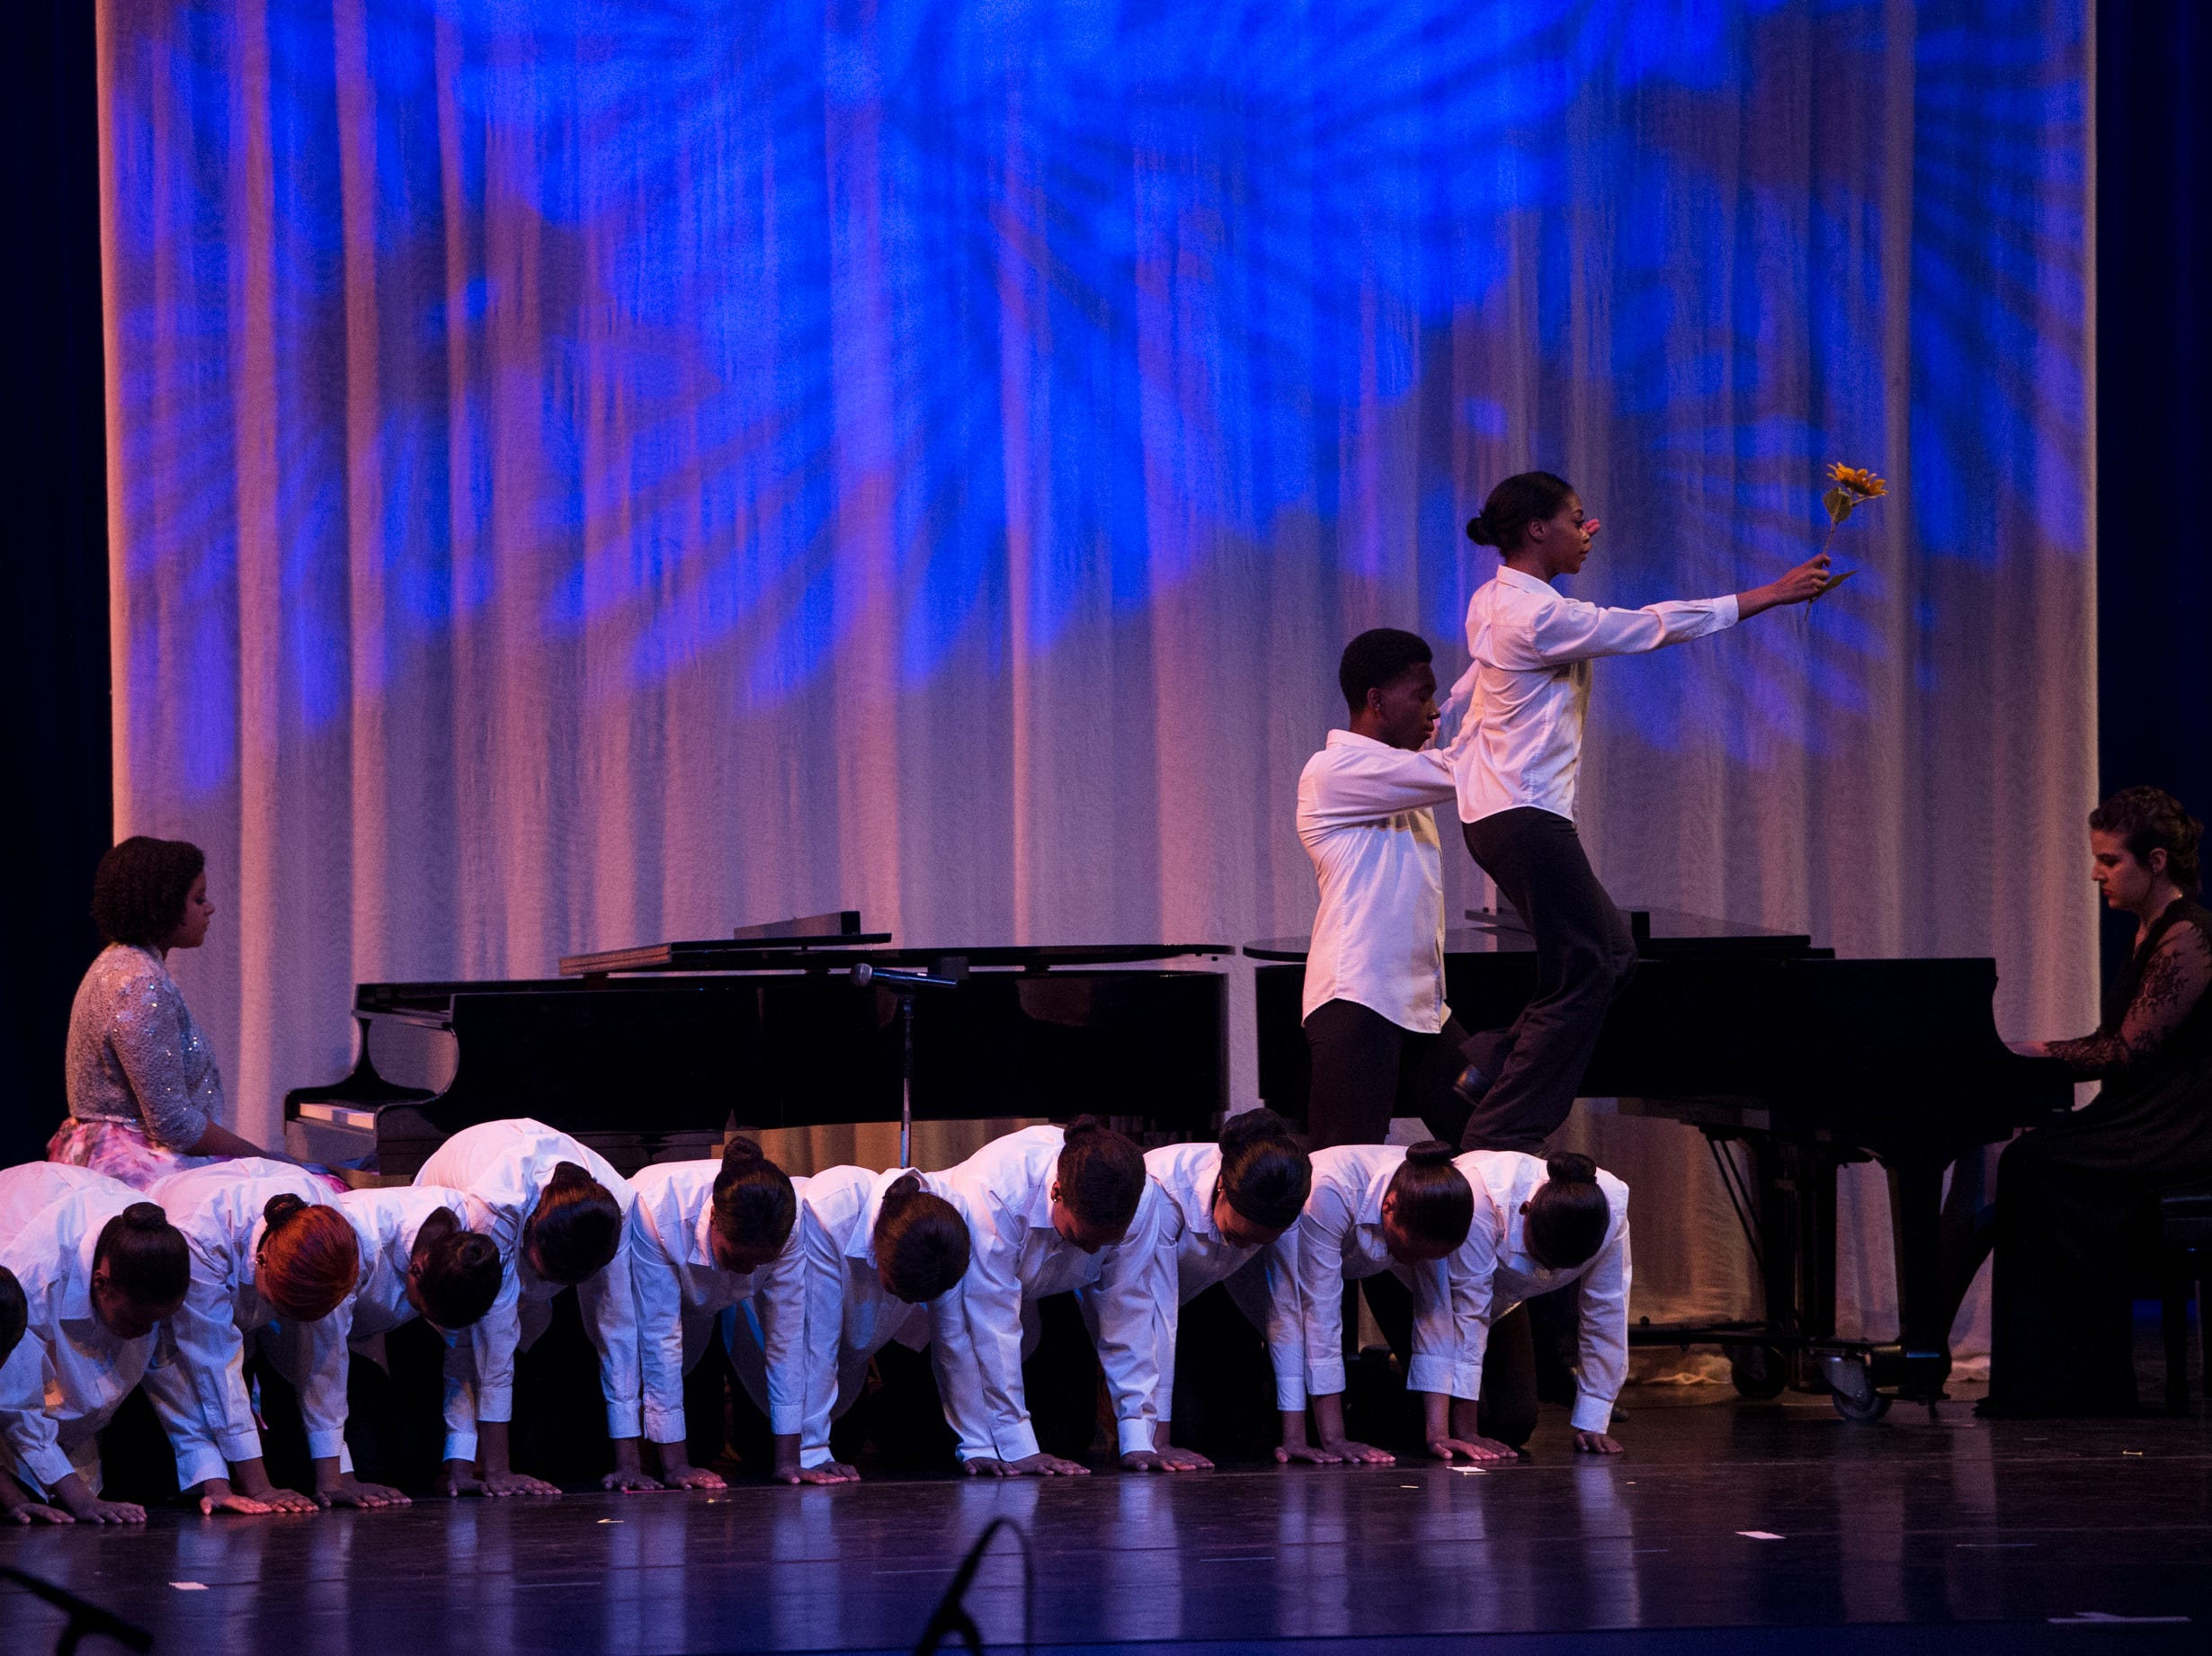 Dance and music students perform during the BTW Showcase: Rise at the Montgomery Performing Arts Center in Montgomery, Ala., on Friday, Jan. 11, 2019.